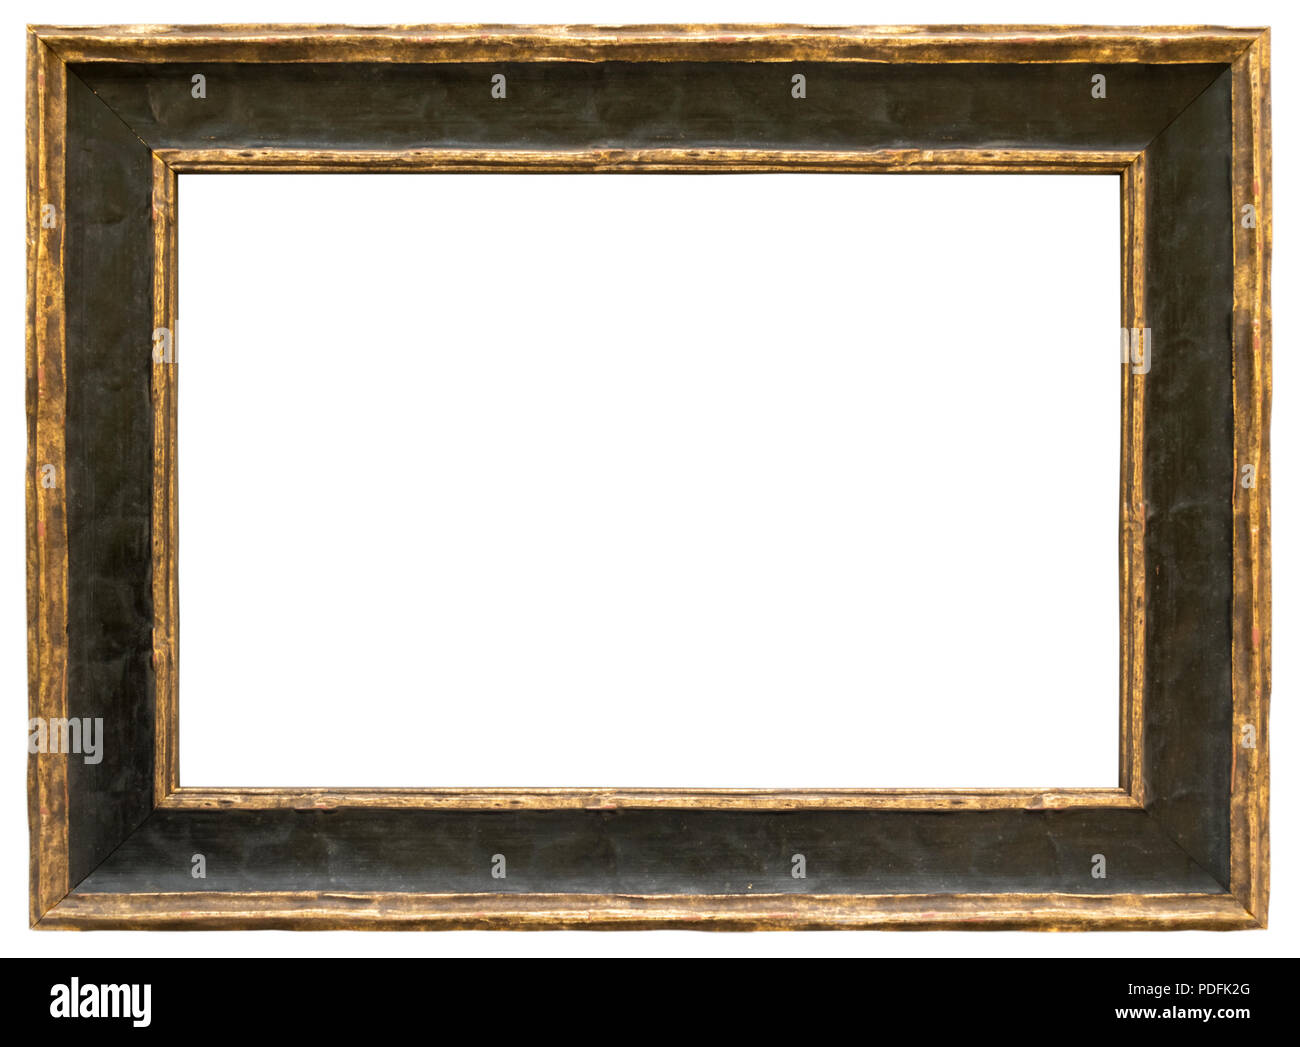 Dekoration Stock Photos & Dekoration Stock Images - Alamy